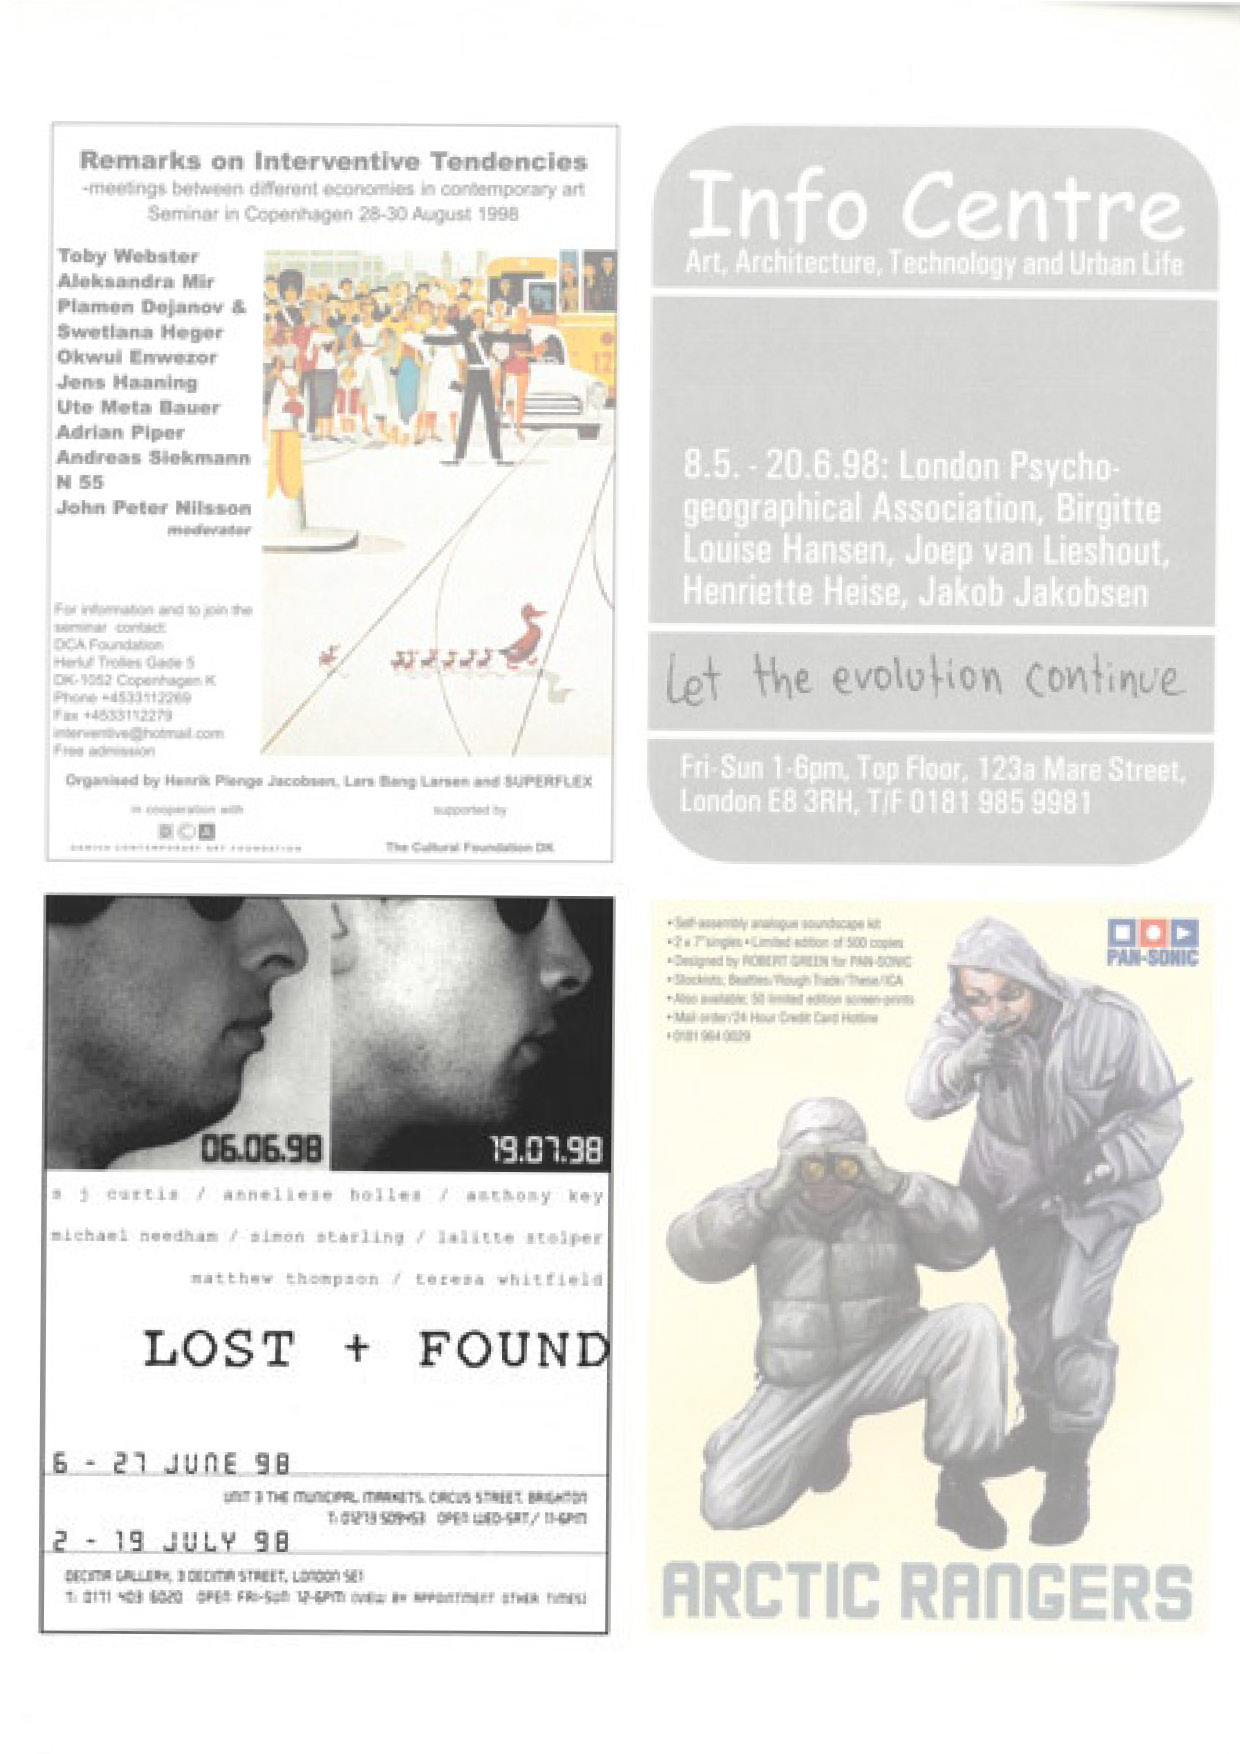 Lost&Found-Images-MASTER-14